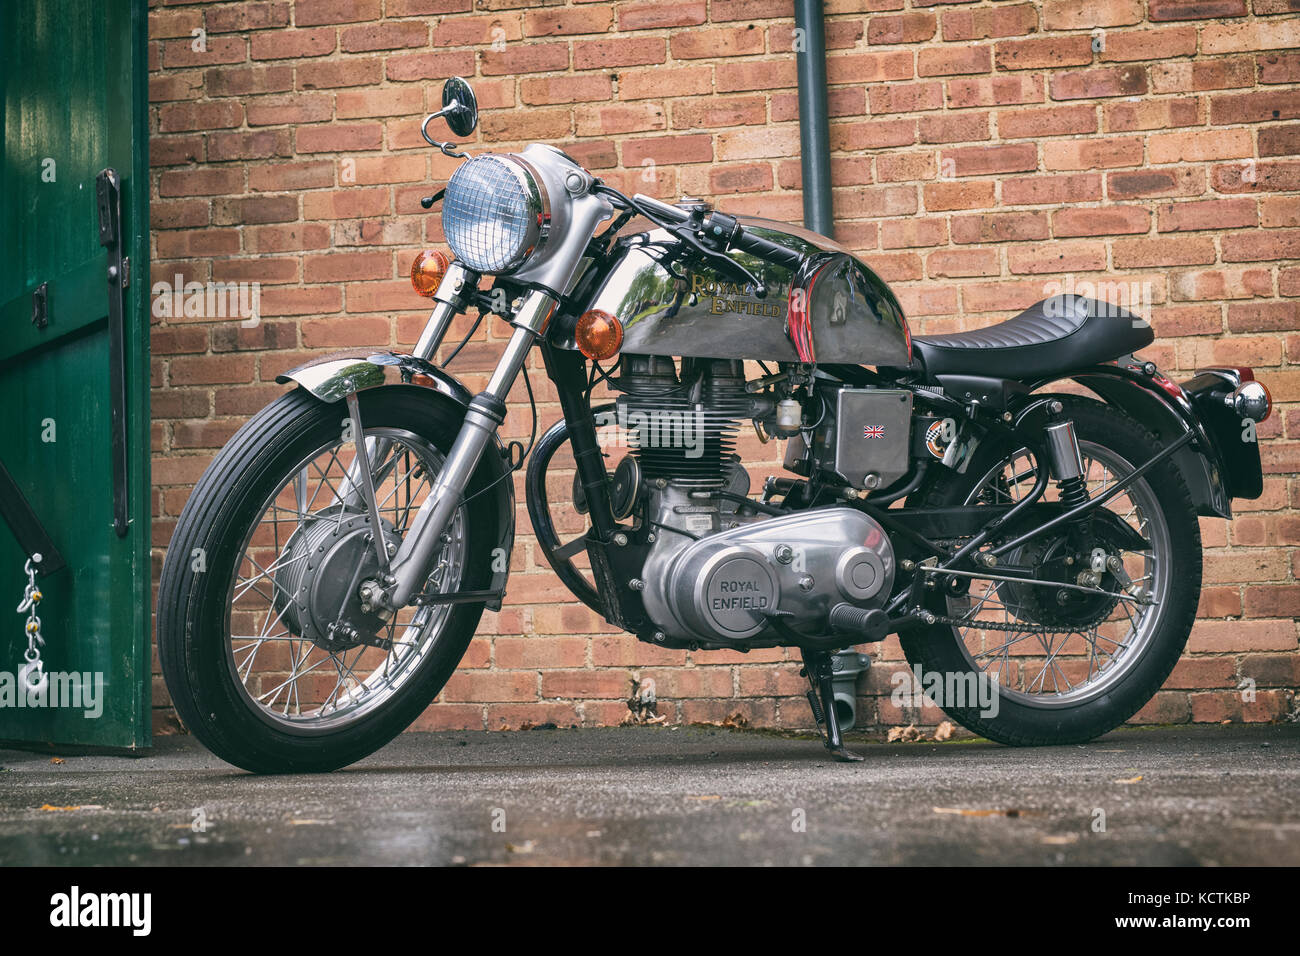 Royal Enfield cafe racer motorcycle at Bicester Heritage Centre